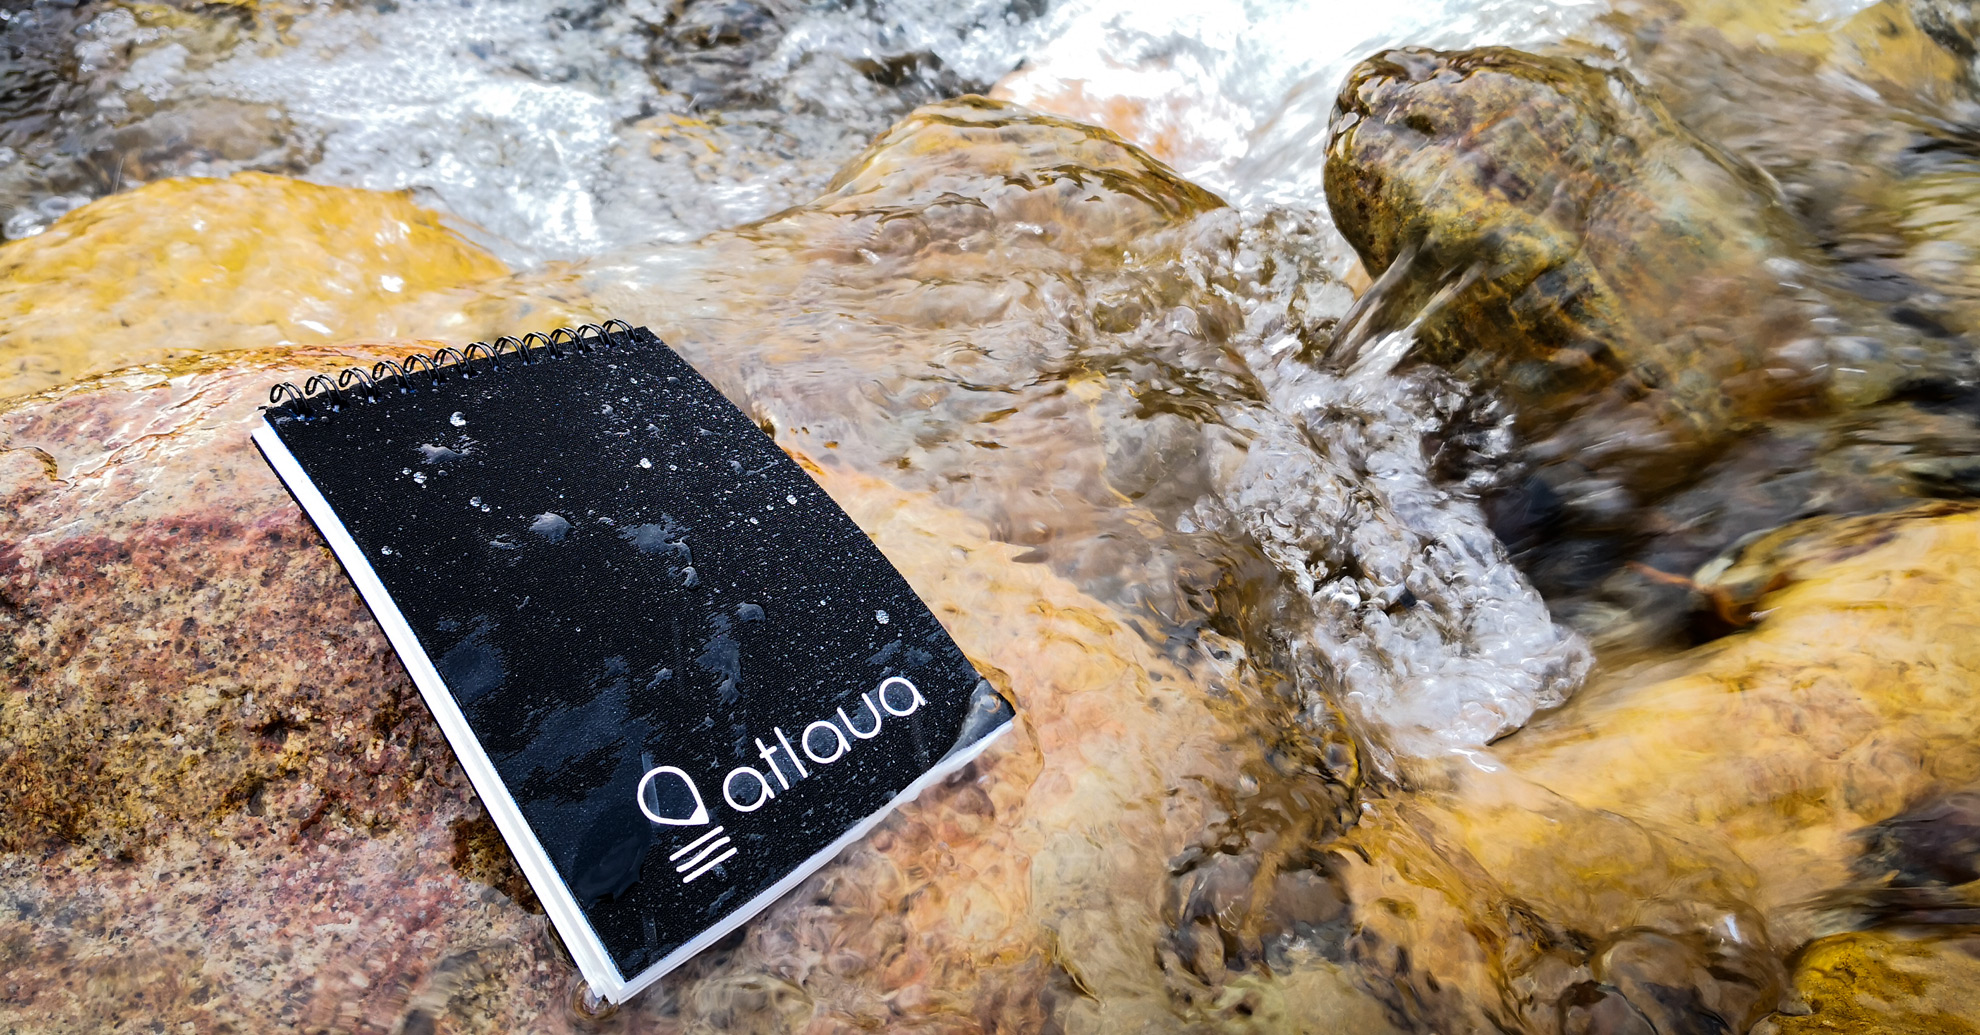 taccuino waterproof atlaua nero per canoying, trekking e diving